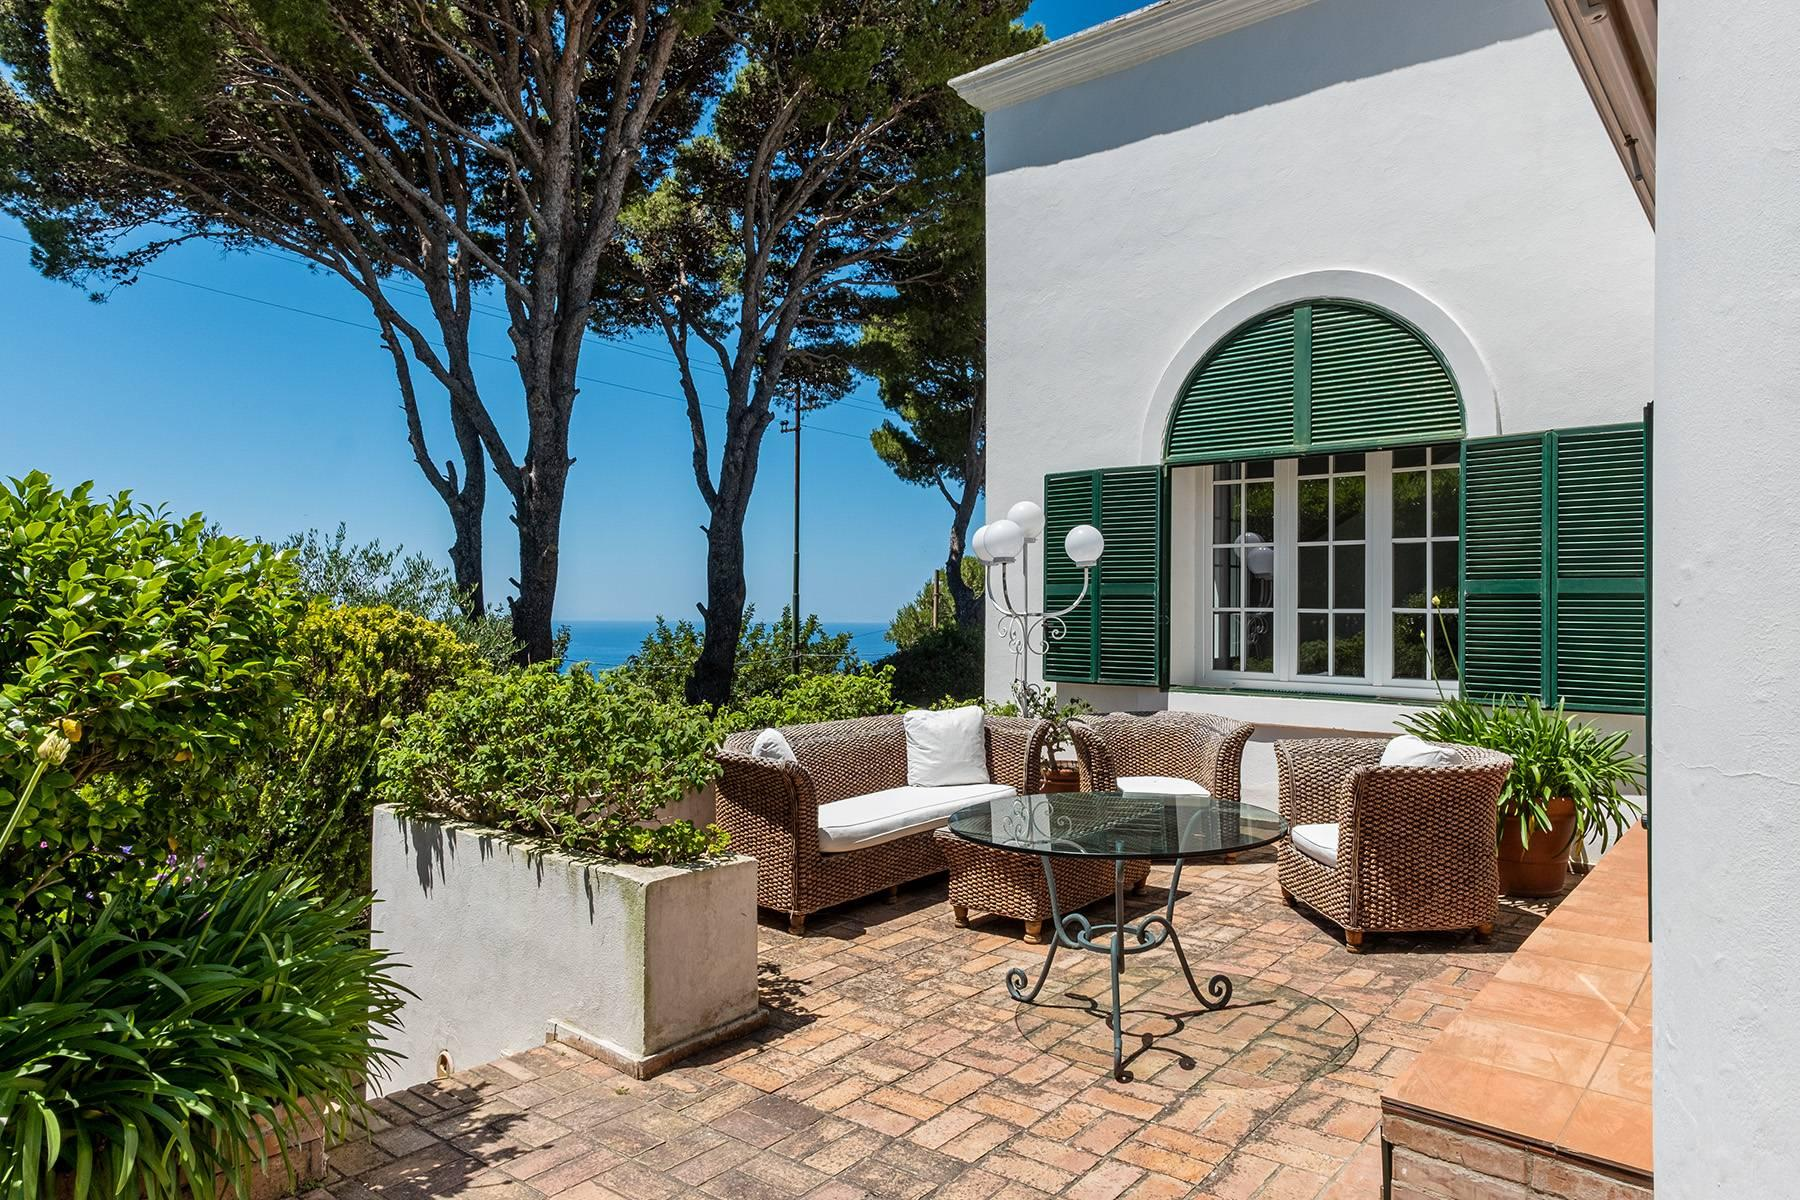 Charming villa with swimming pool in Anacapri - 7